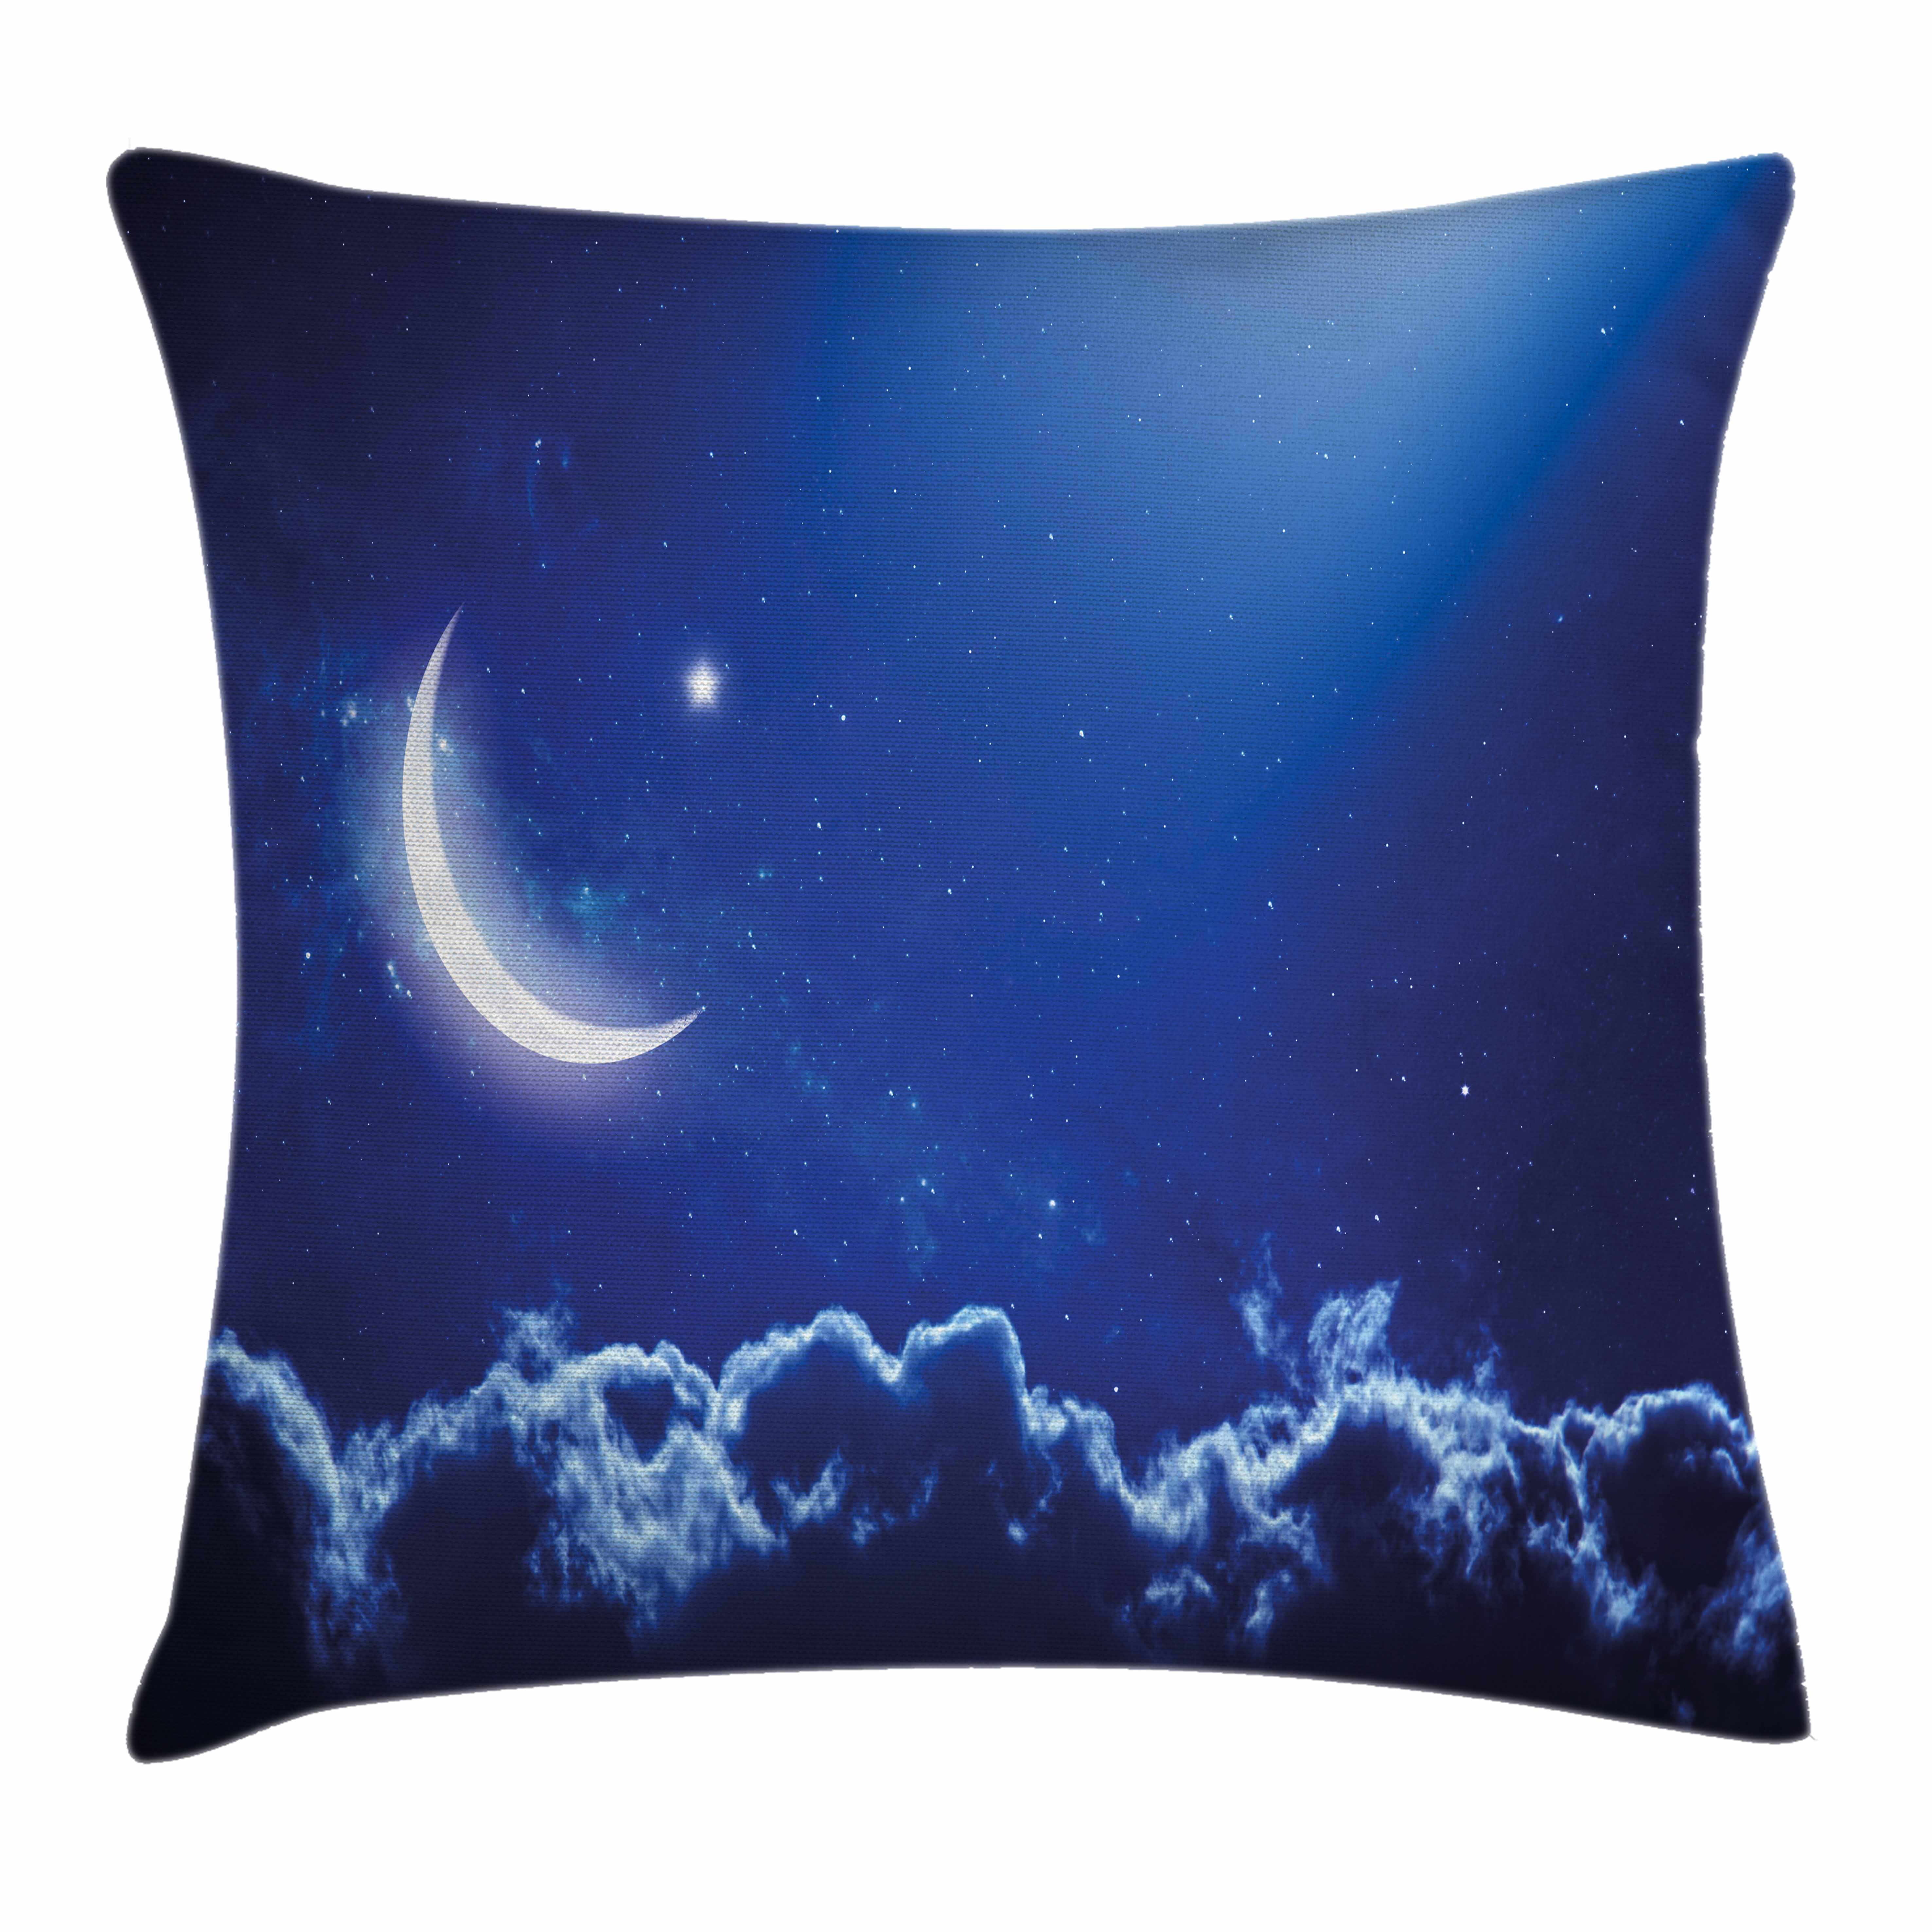 Night Throw Pillow Cushion Cover, Eid Mubarak Themed IMage with Crescent Moon... by Kozmos